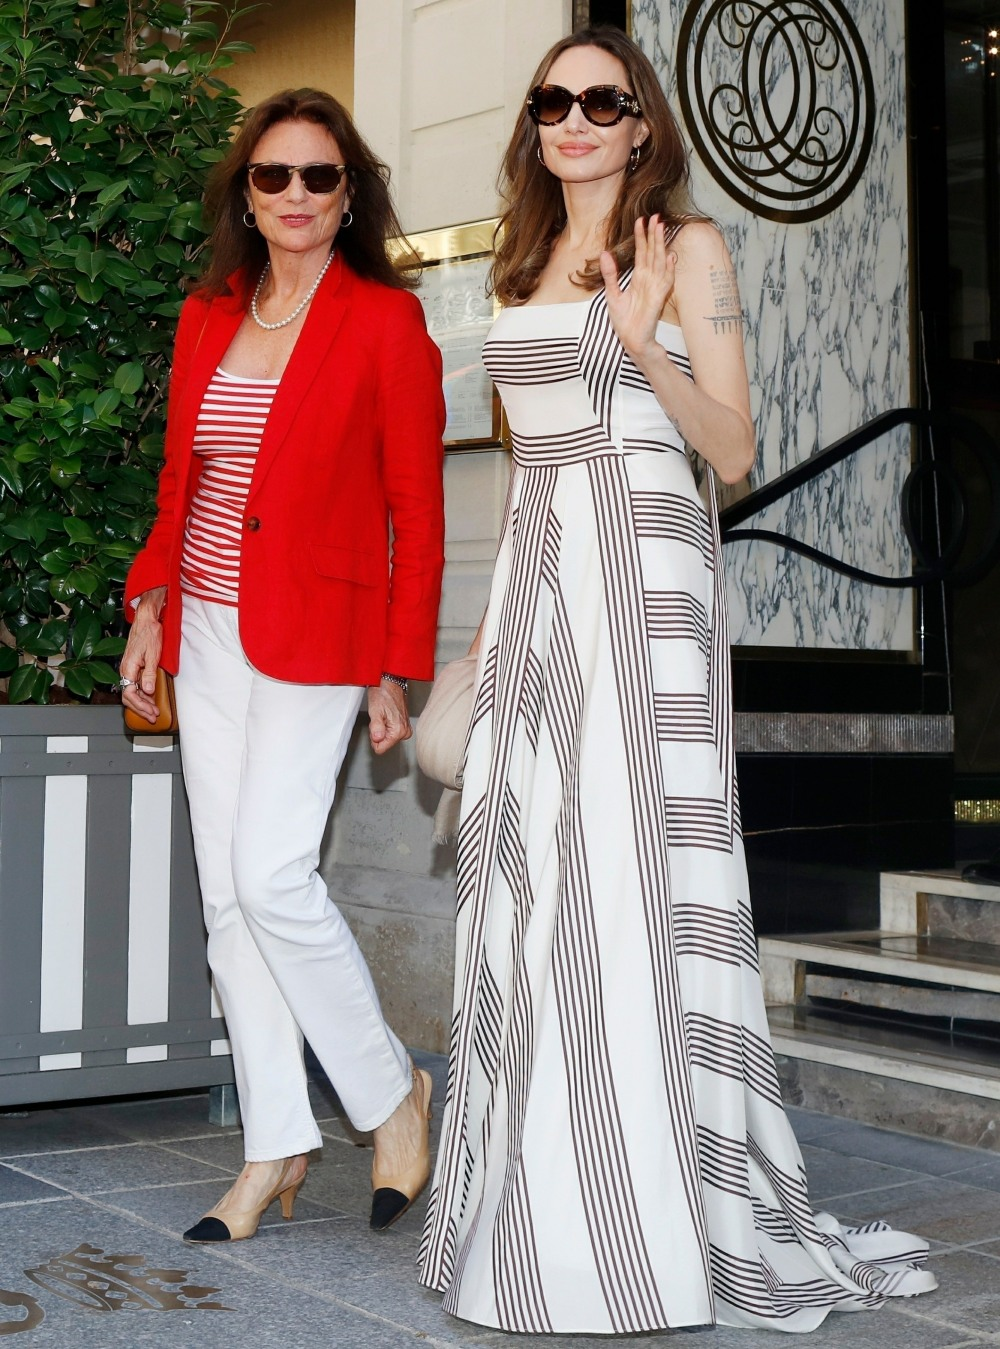 Angelina Jolie and Jacqueline Bisset leave their hotel in Paris